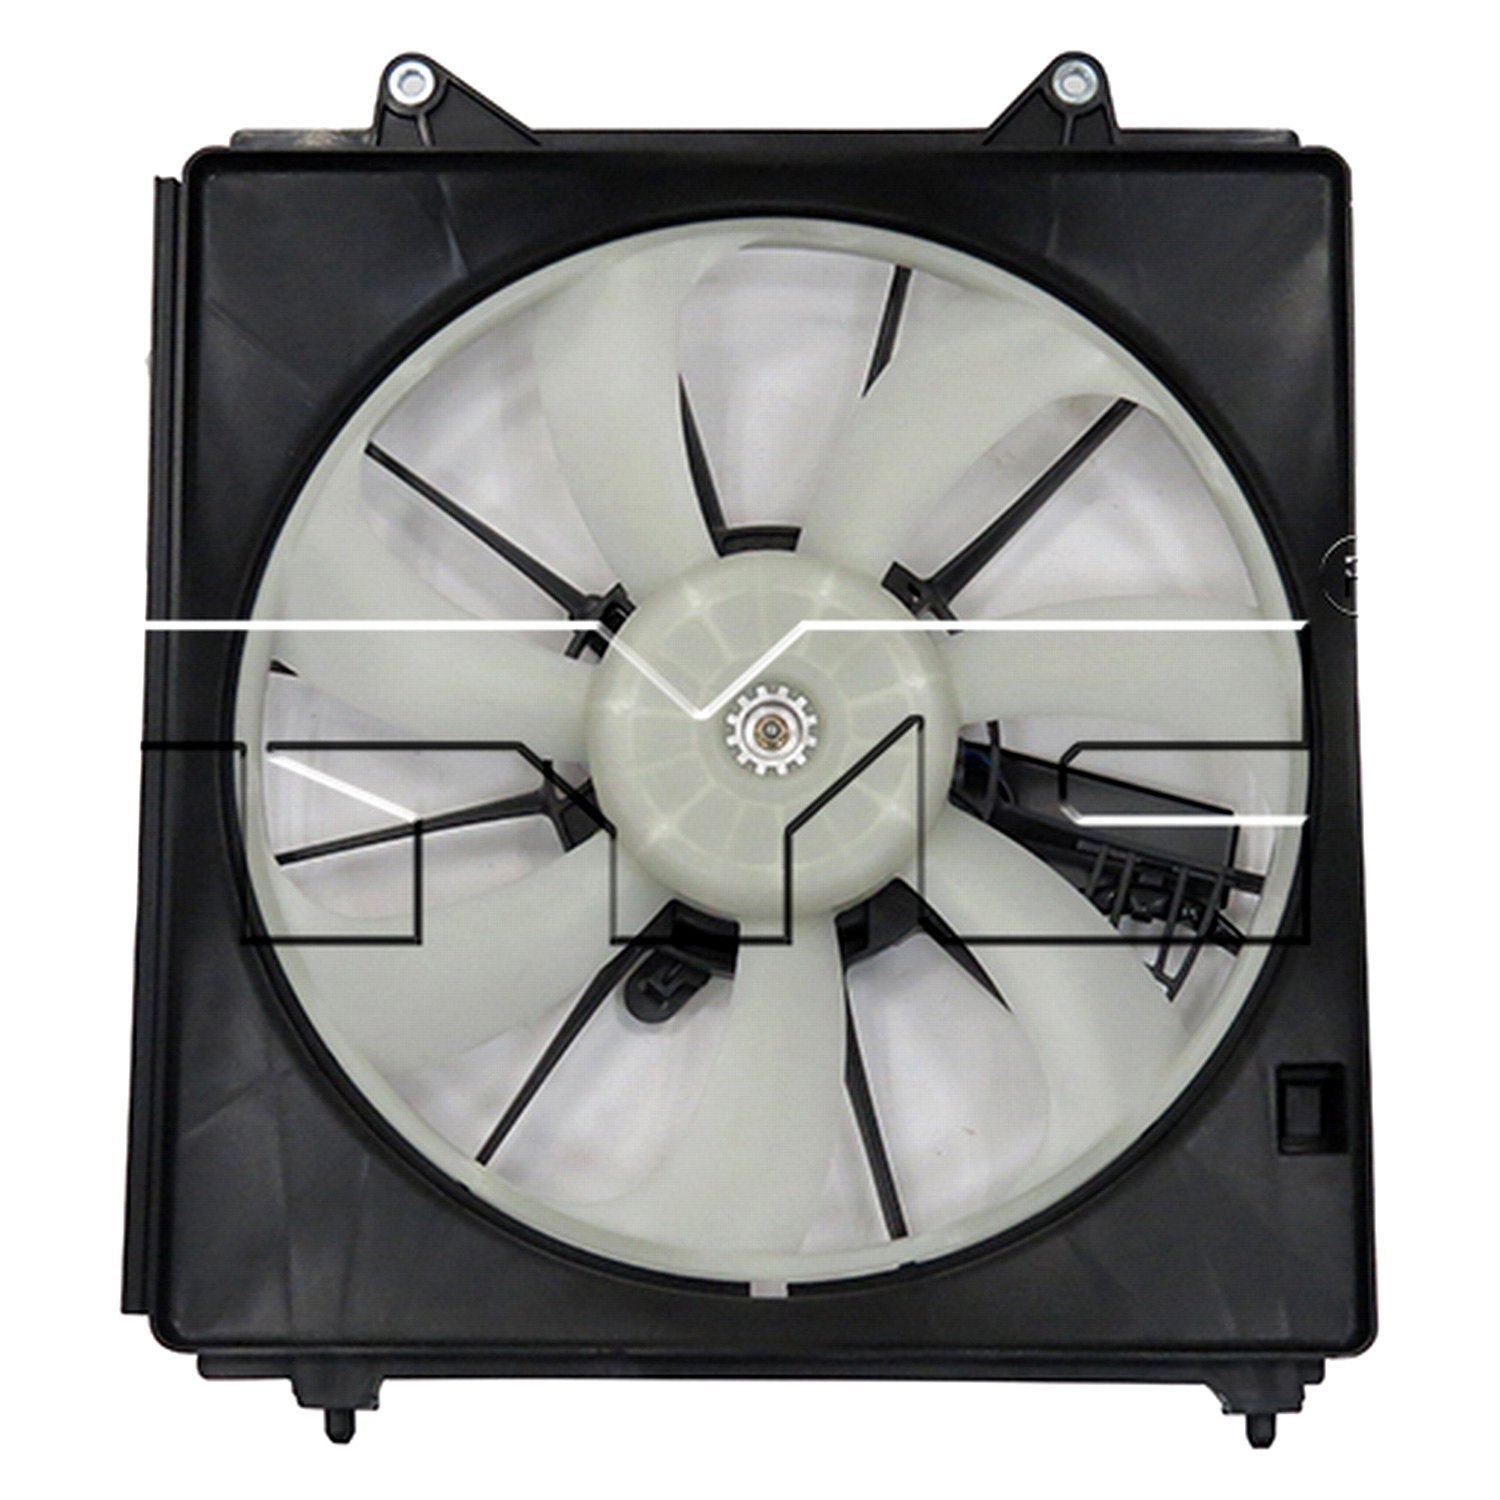 For Acura TLX 2015-2016 TYC 611500 Right A/C Condenser Fan